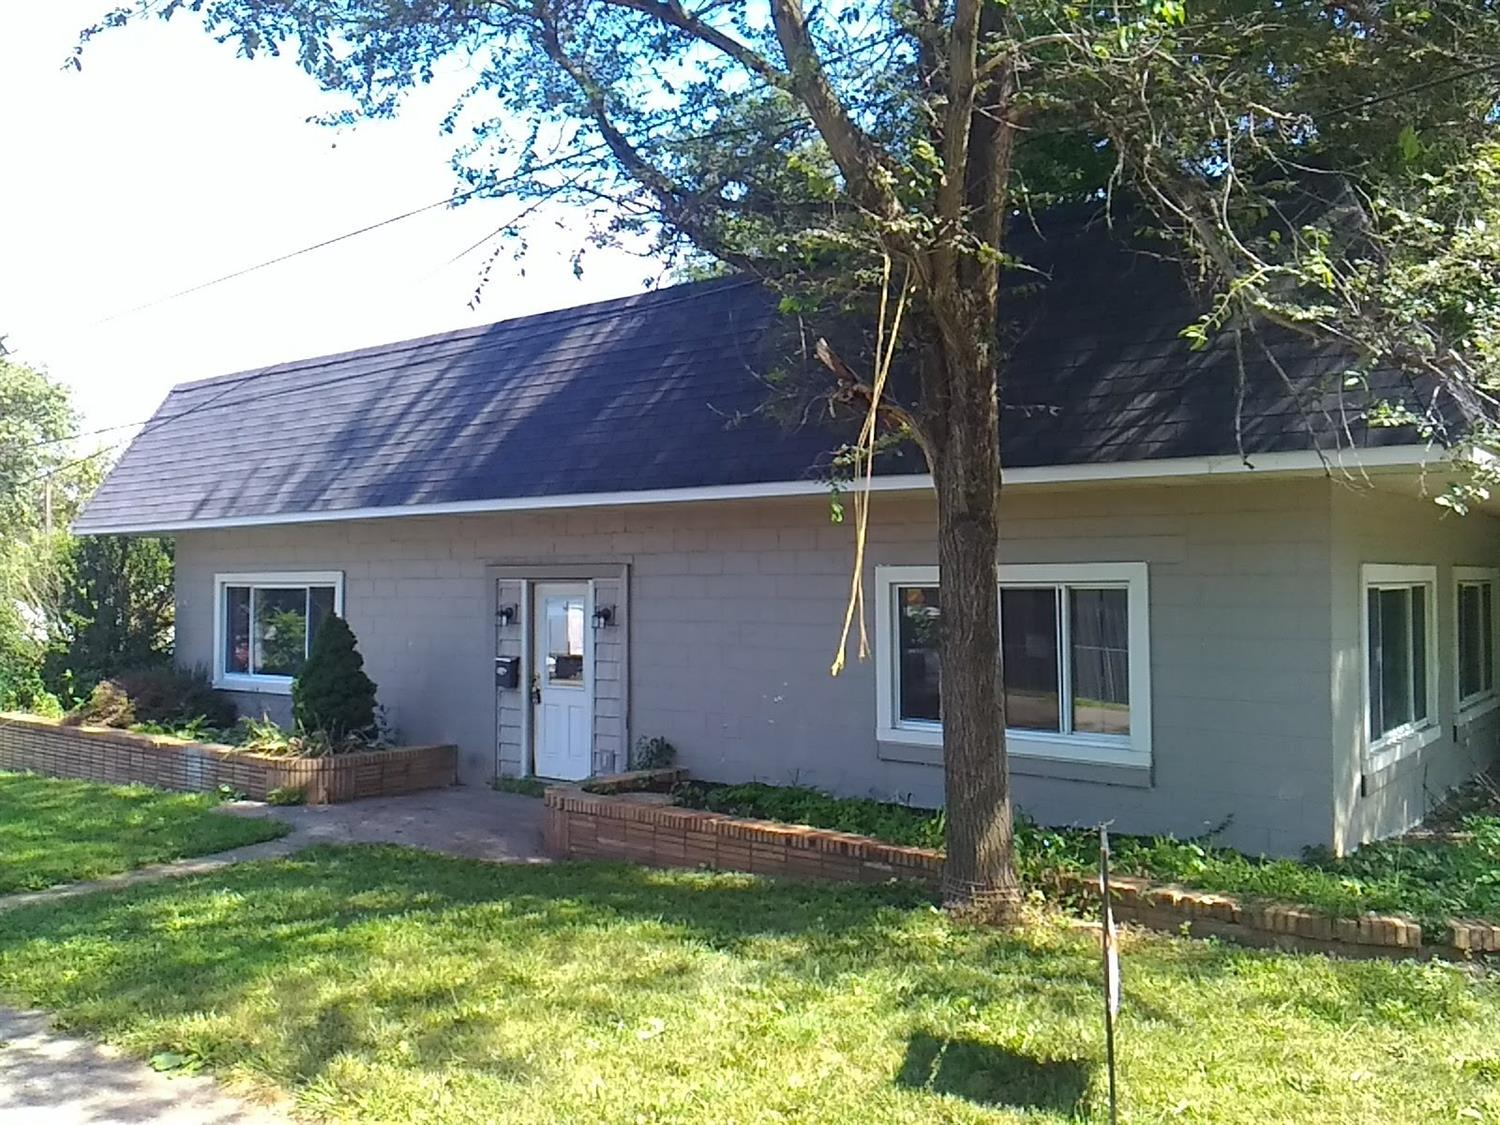 239 Miami St St. Clair Twp., OH